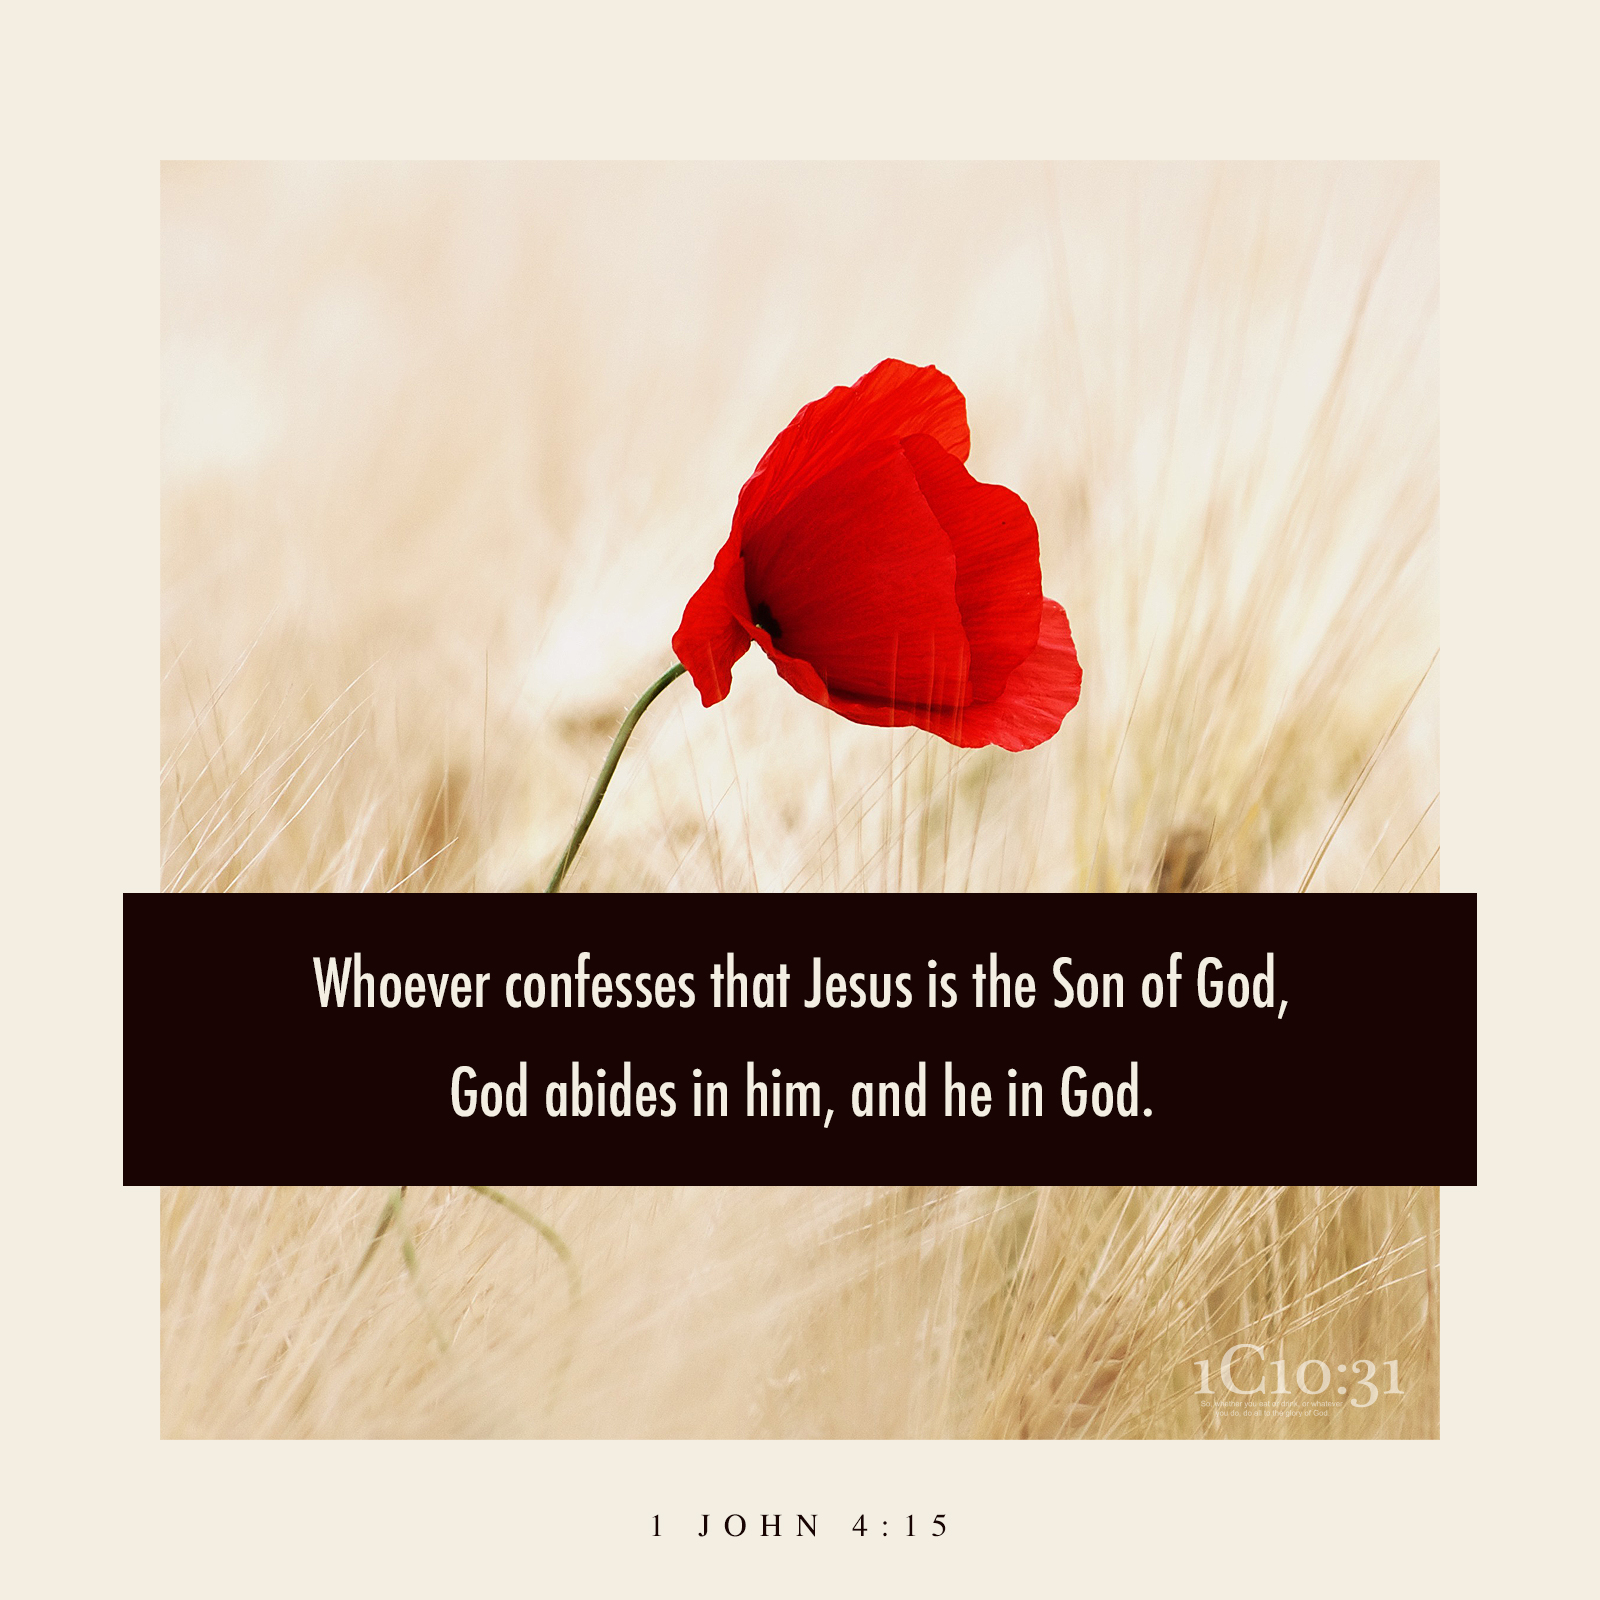 1 John 4:15 (NKJV) Whoever confesses that Jesus is the Son of God, God abides in him, and he in God.